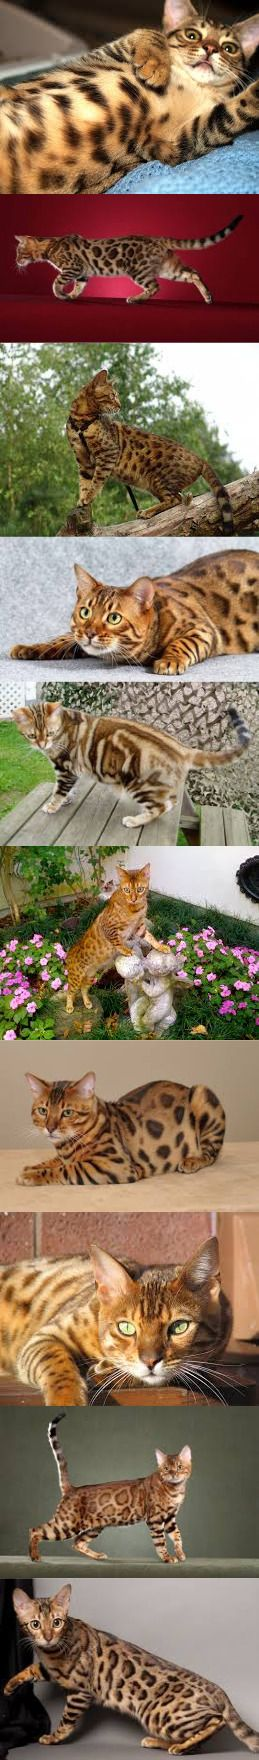 Amazing Facts About Bengal Cat. Definitely Must Read!